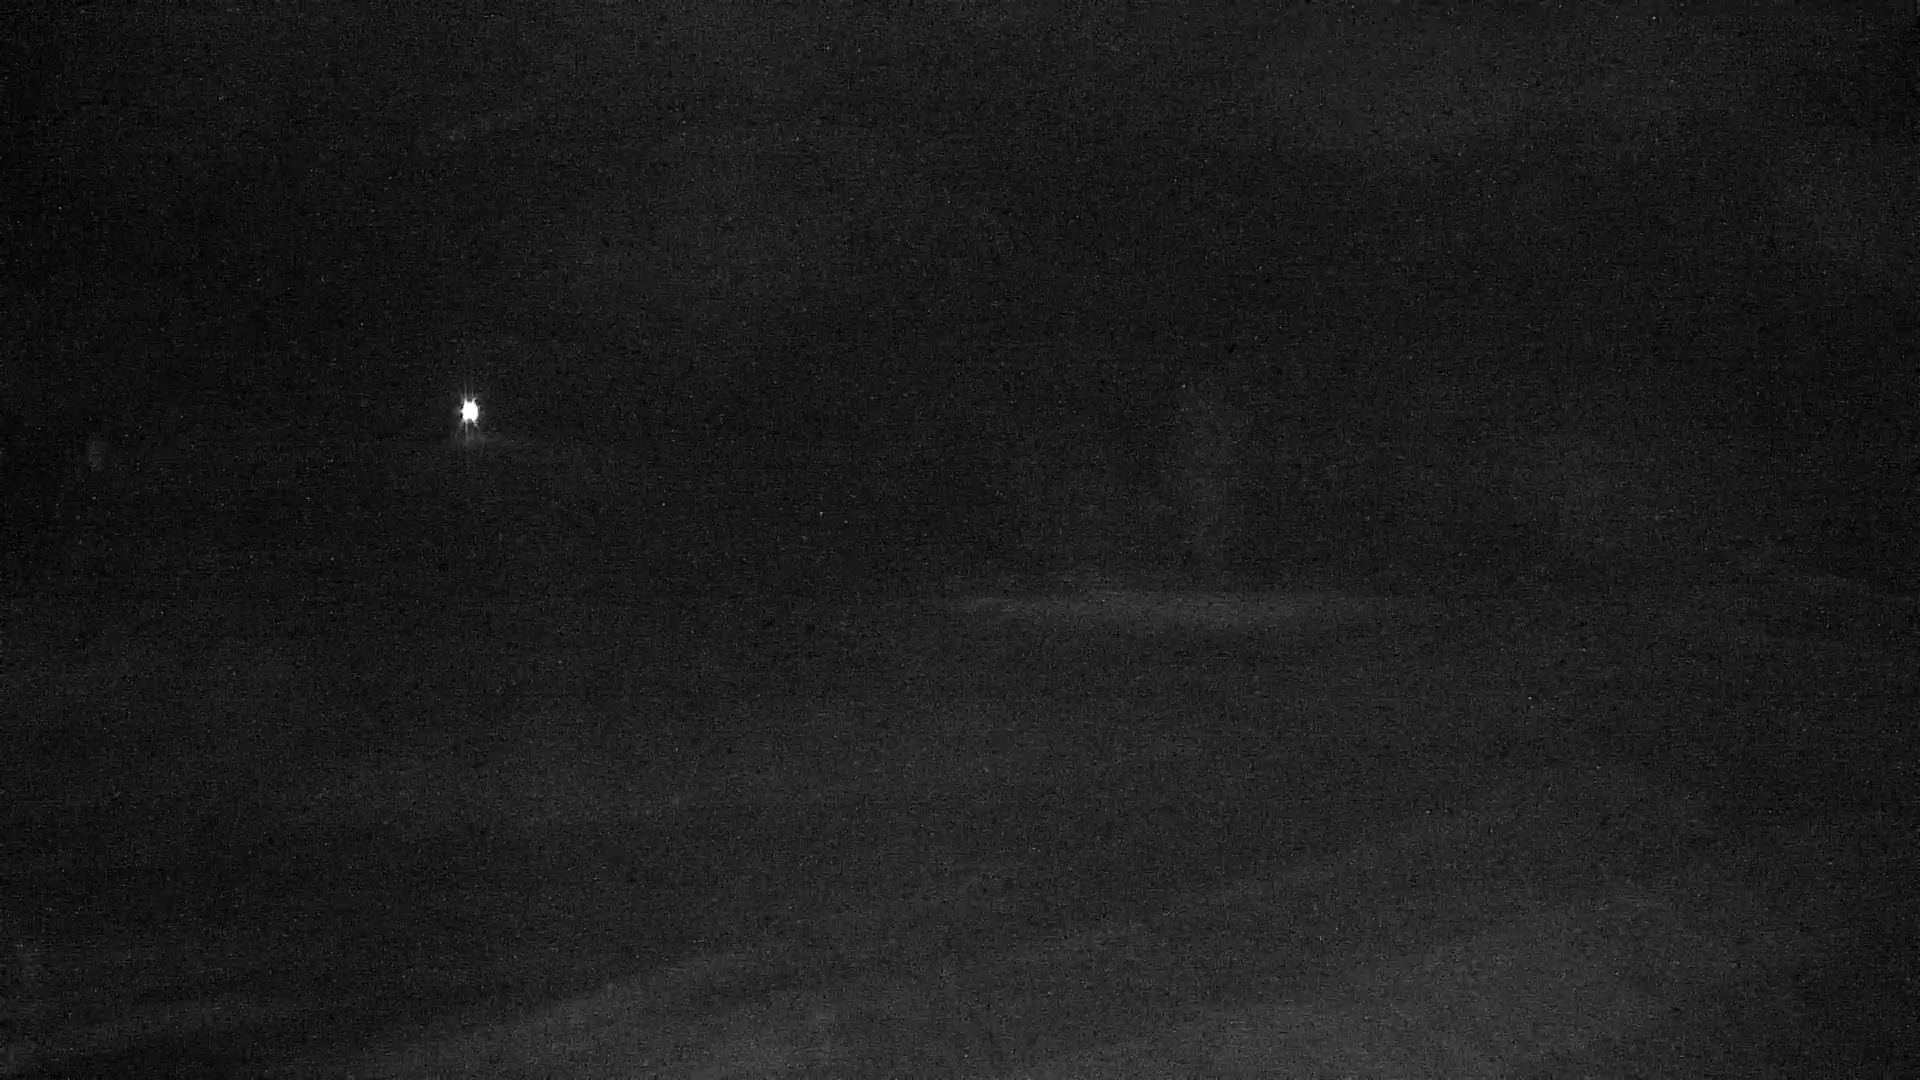 Snow Park Lodge Webcam Image